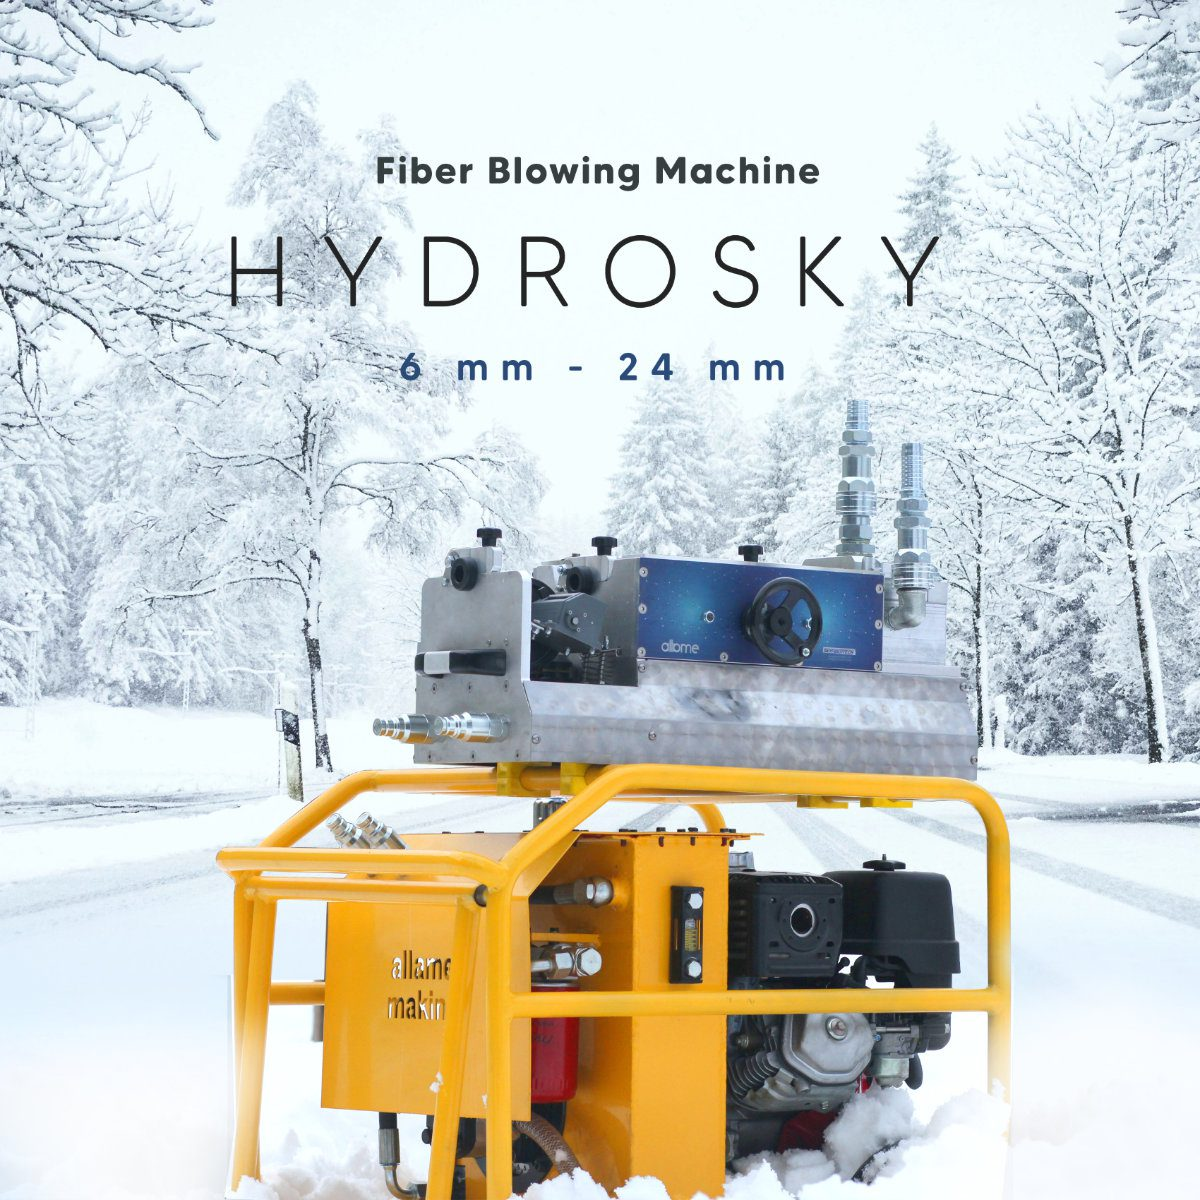 hydrosky cable blowing machine best quality